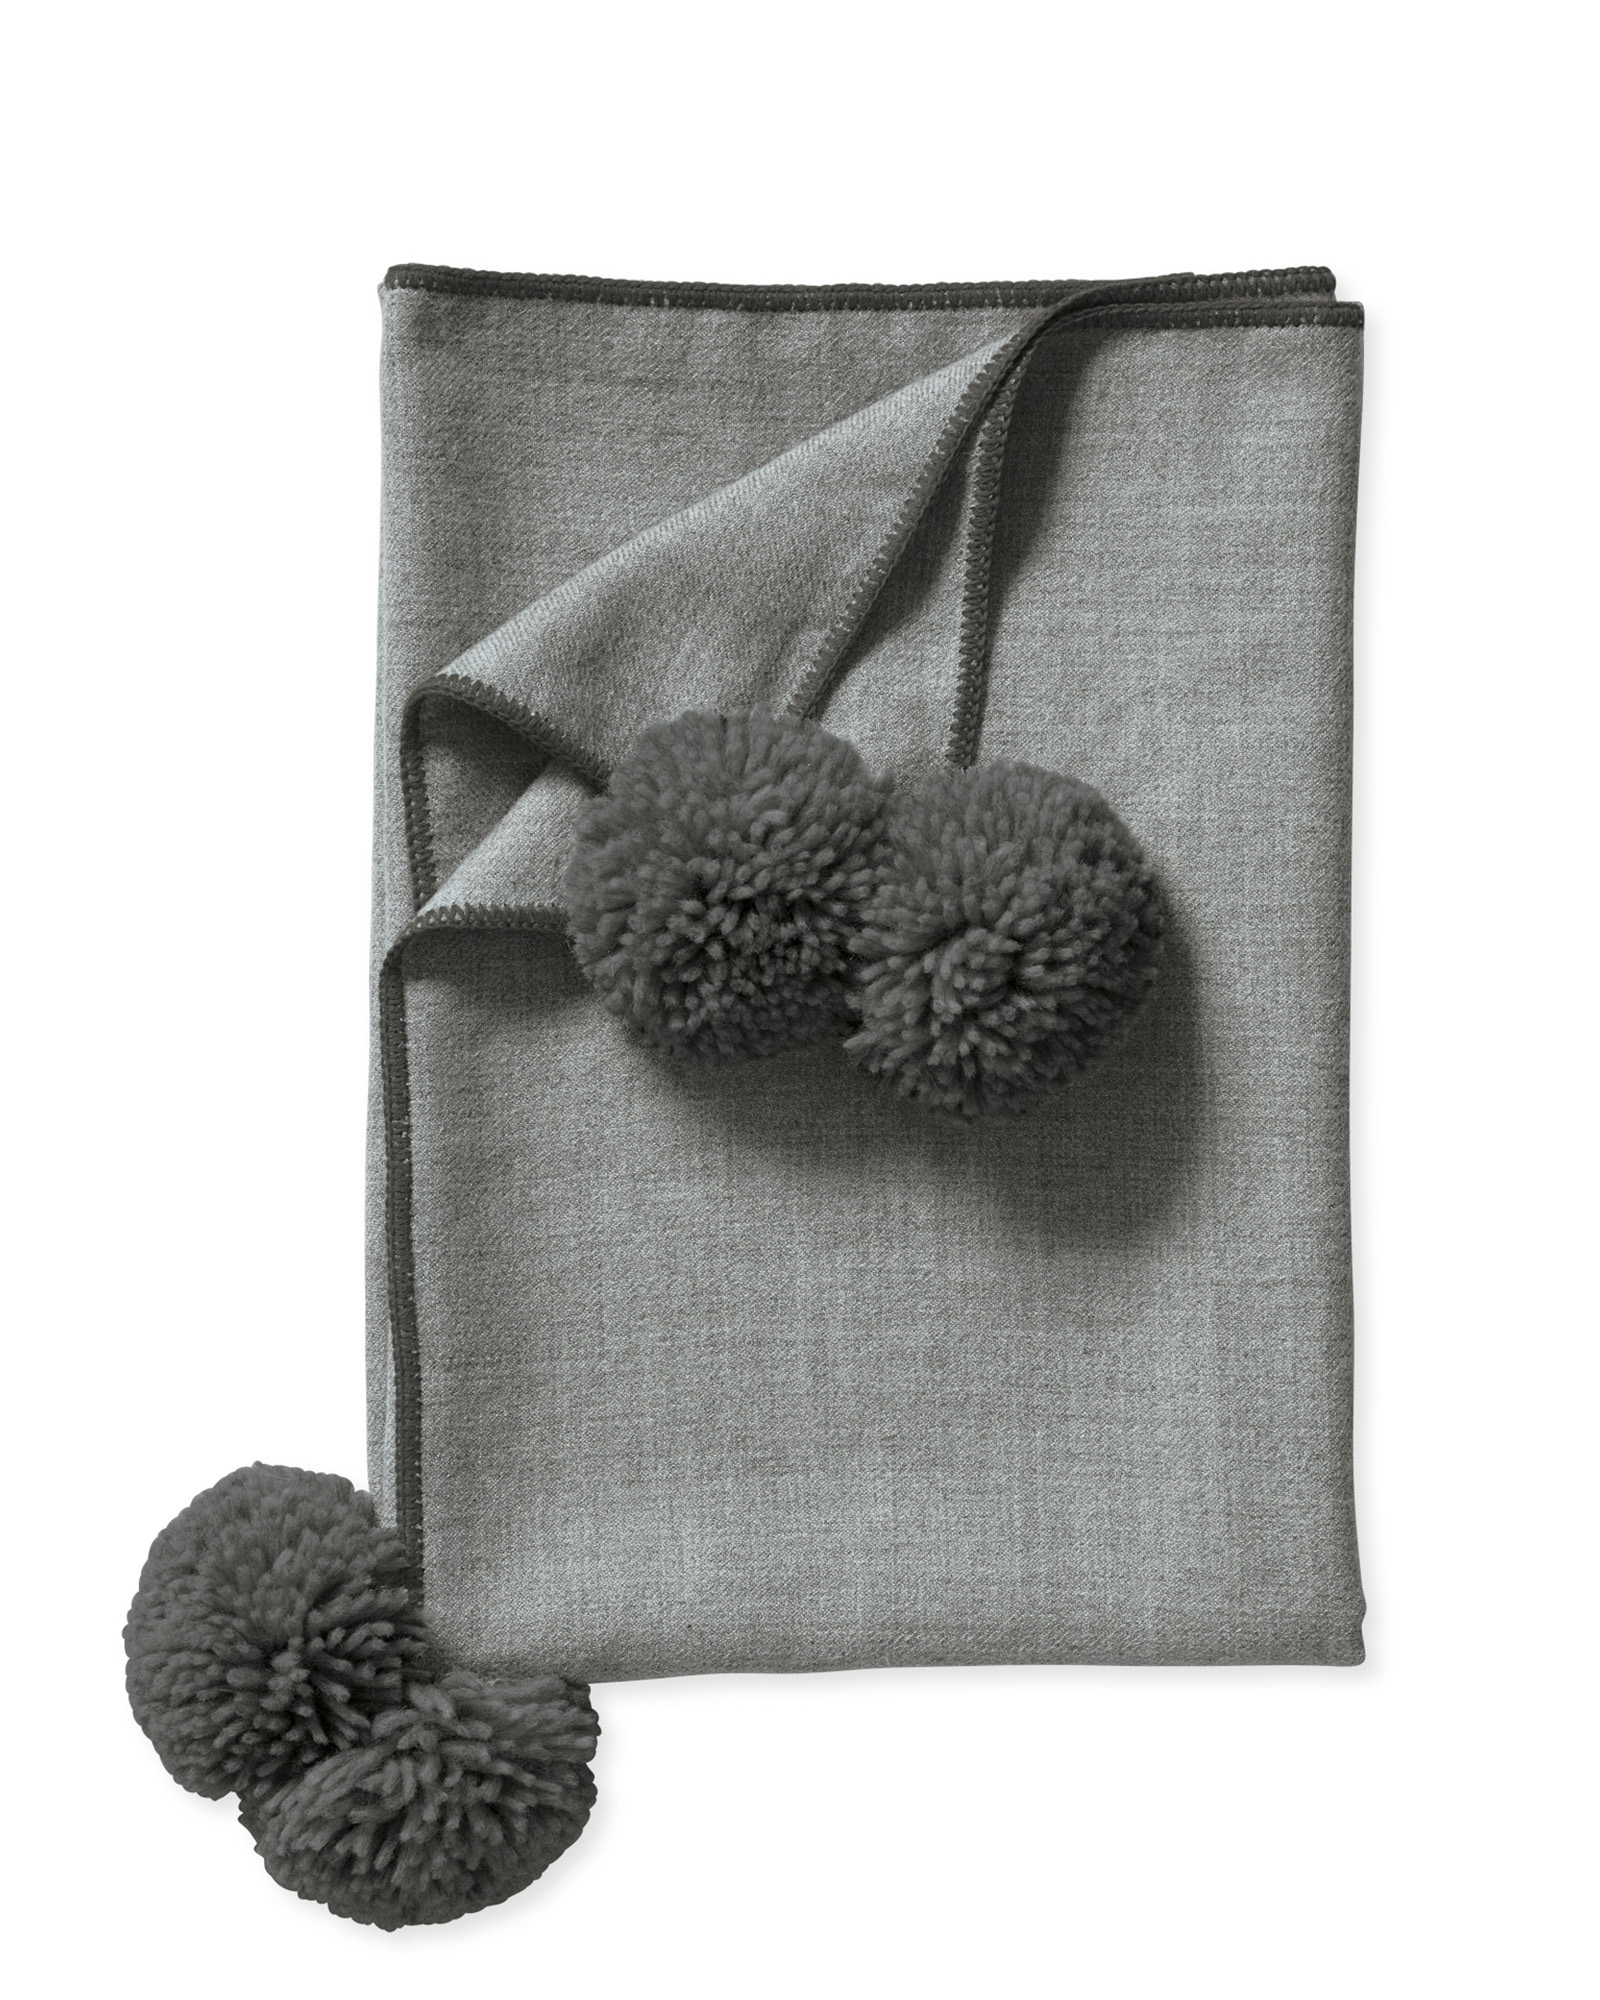 Alpaca wool and oversized pom-poms. Need we say more?!